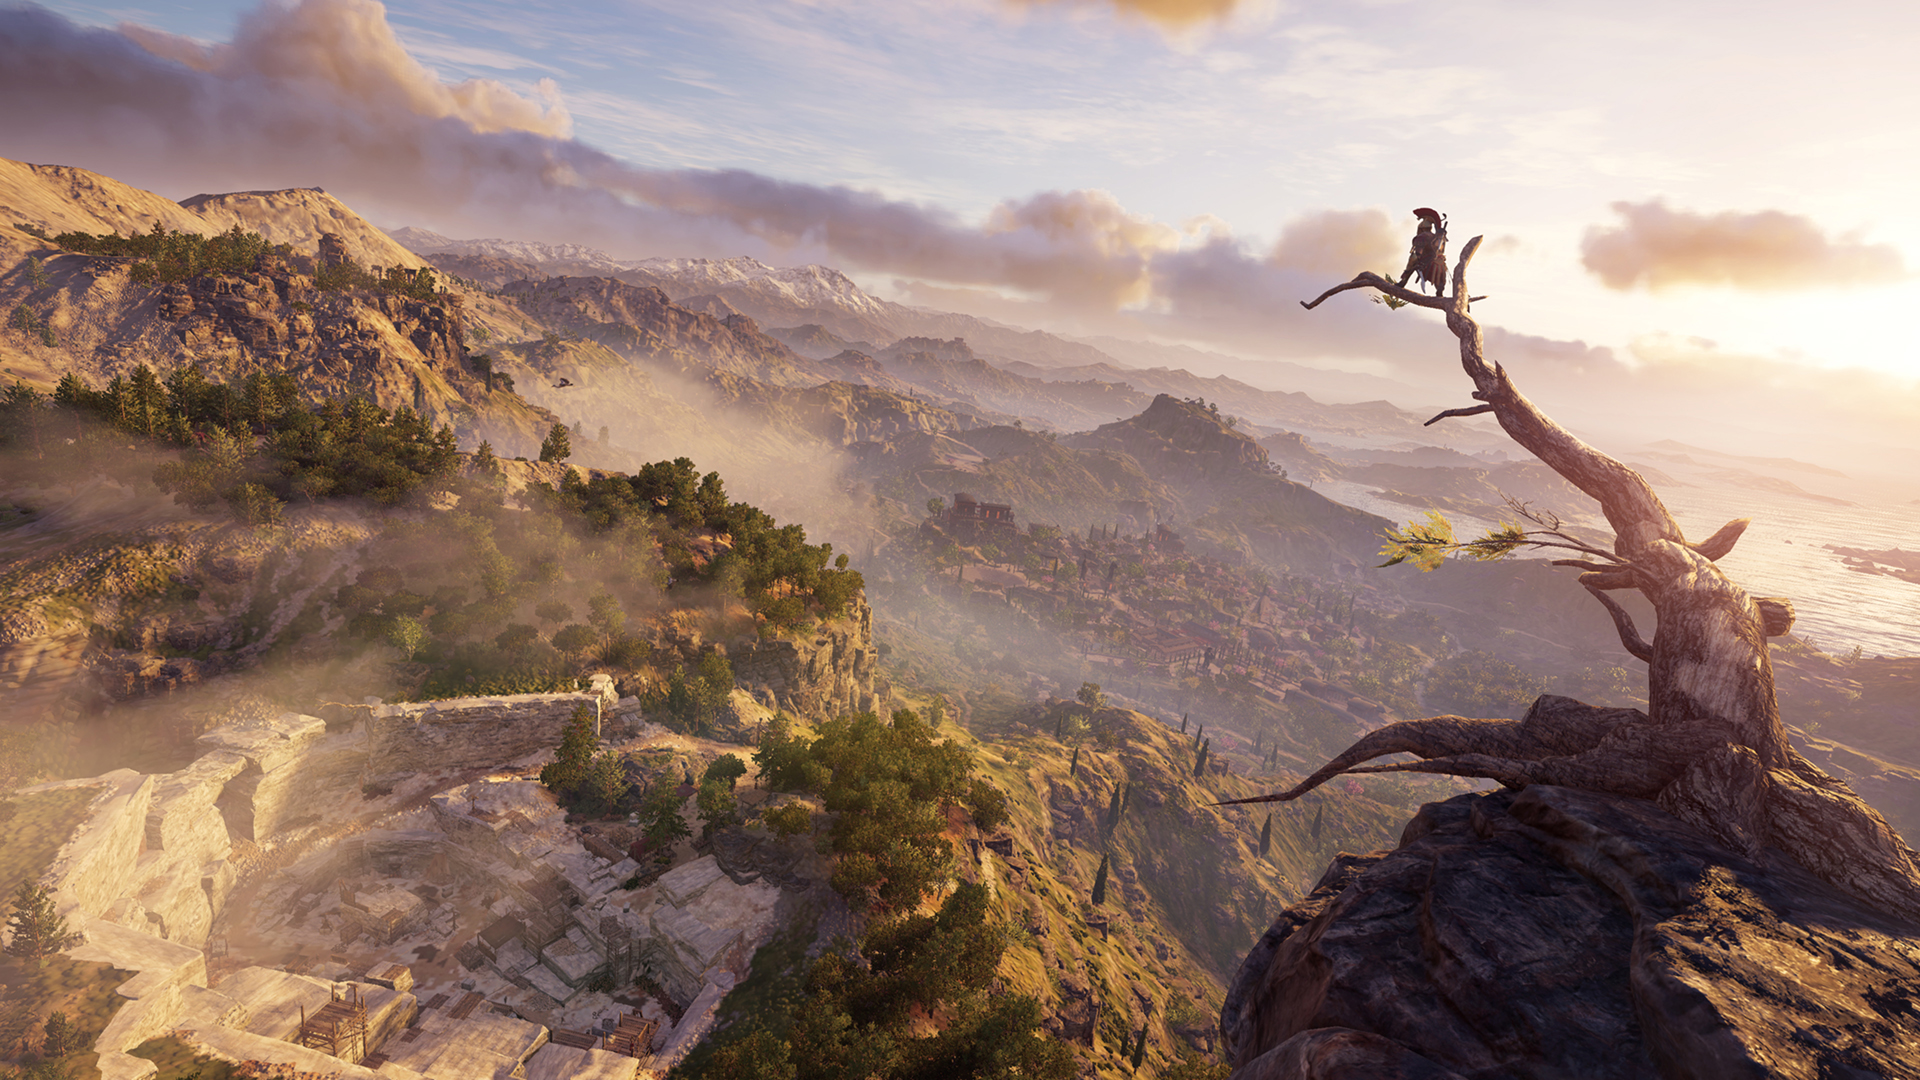 Assassin S Creed Odyssey Is As Close To Greece As You Can Get Without Jumping On A Plane Techradar